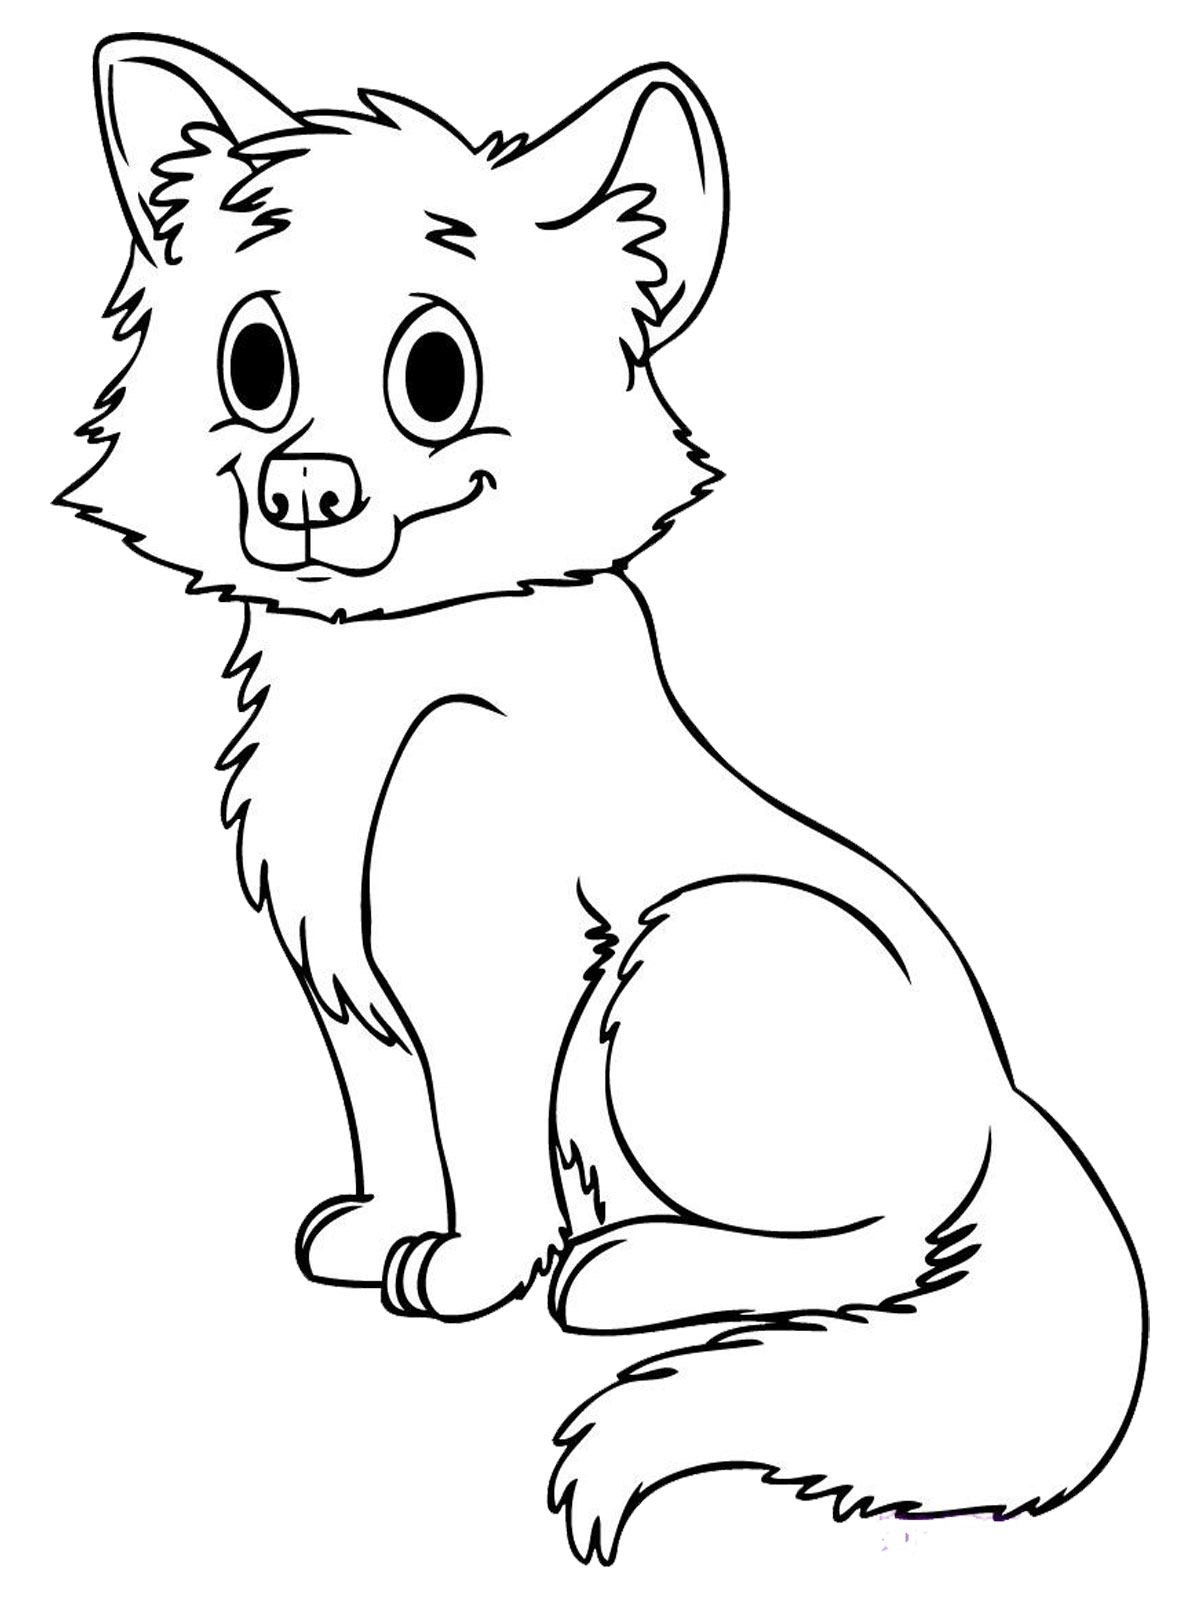 Coloring Pages Baby Animals : Baby animal coloring pages realistic